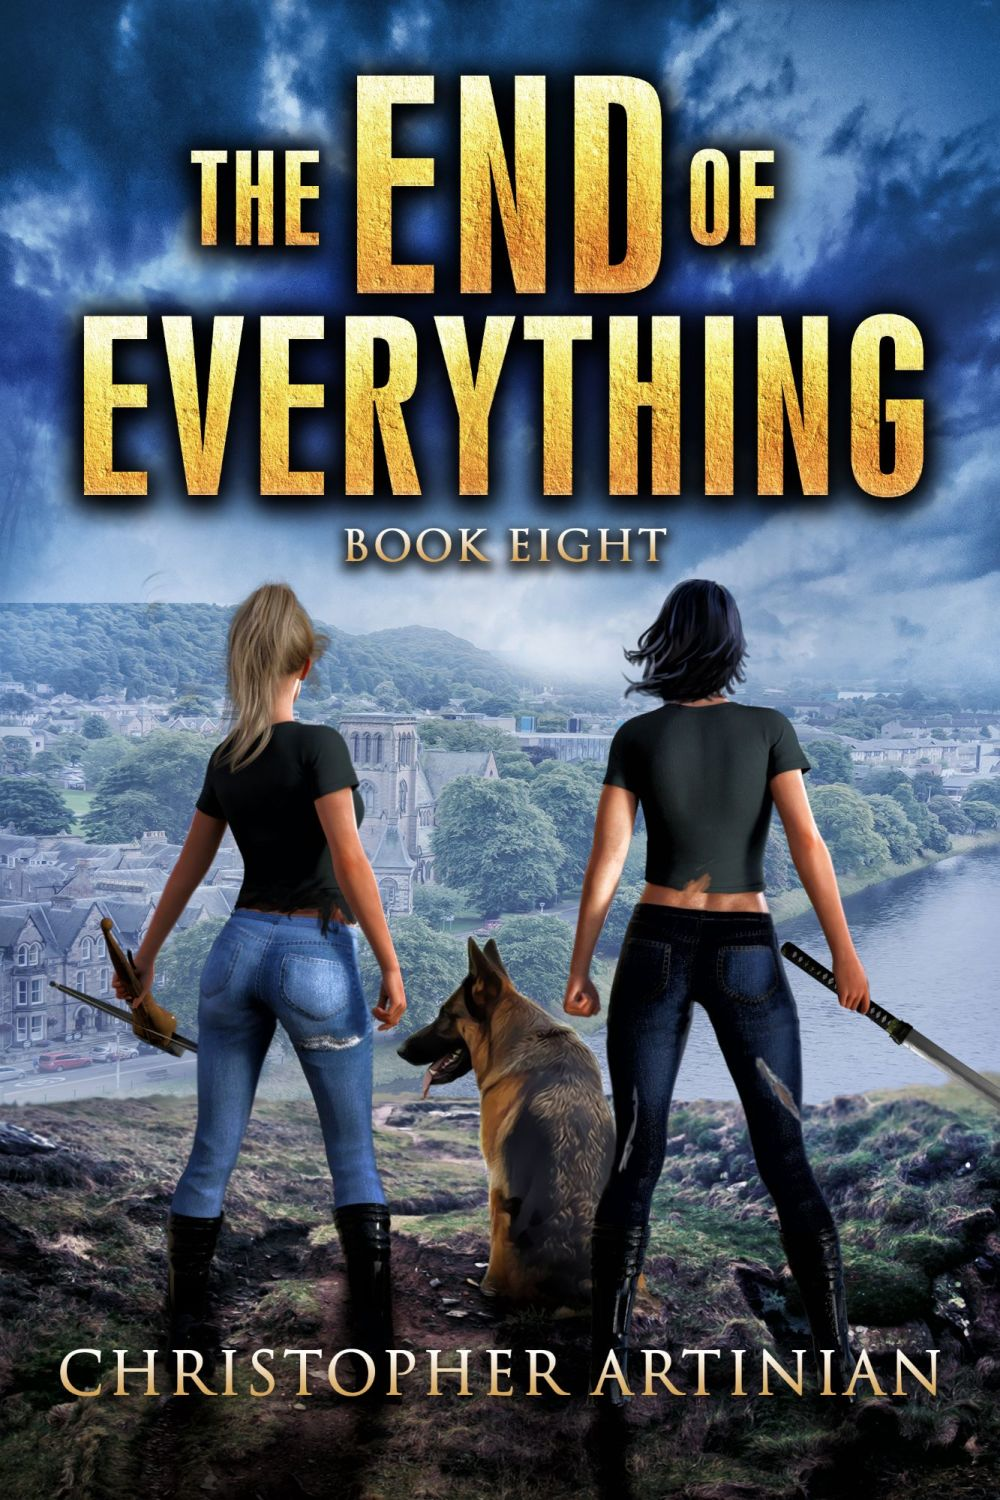 THE END OF EVERYTHING: BOOK 8 (SIGNED PAPERBACK)